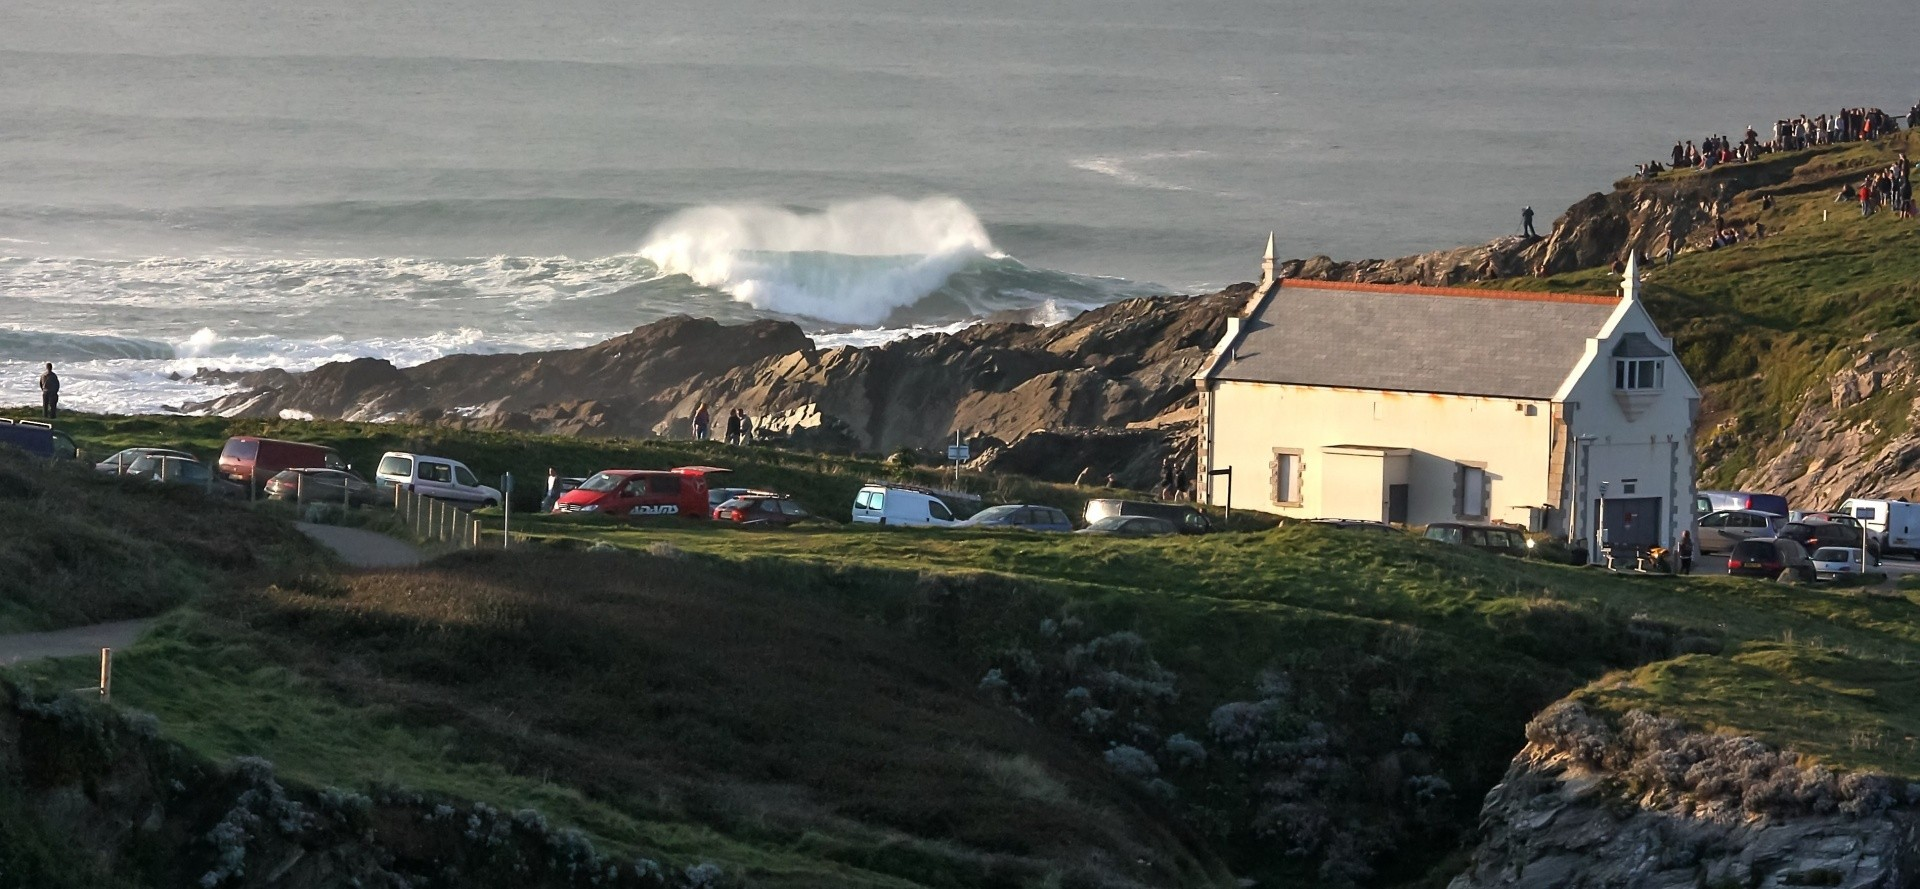 MarkM's photo of Newquay - Cribbar